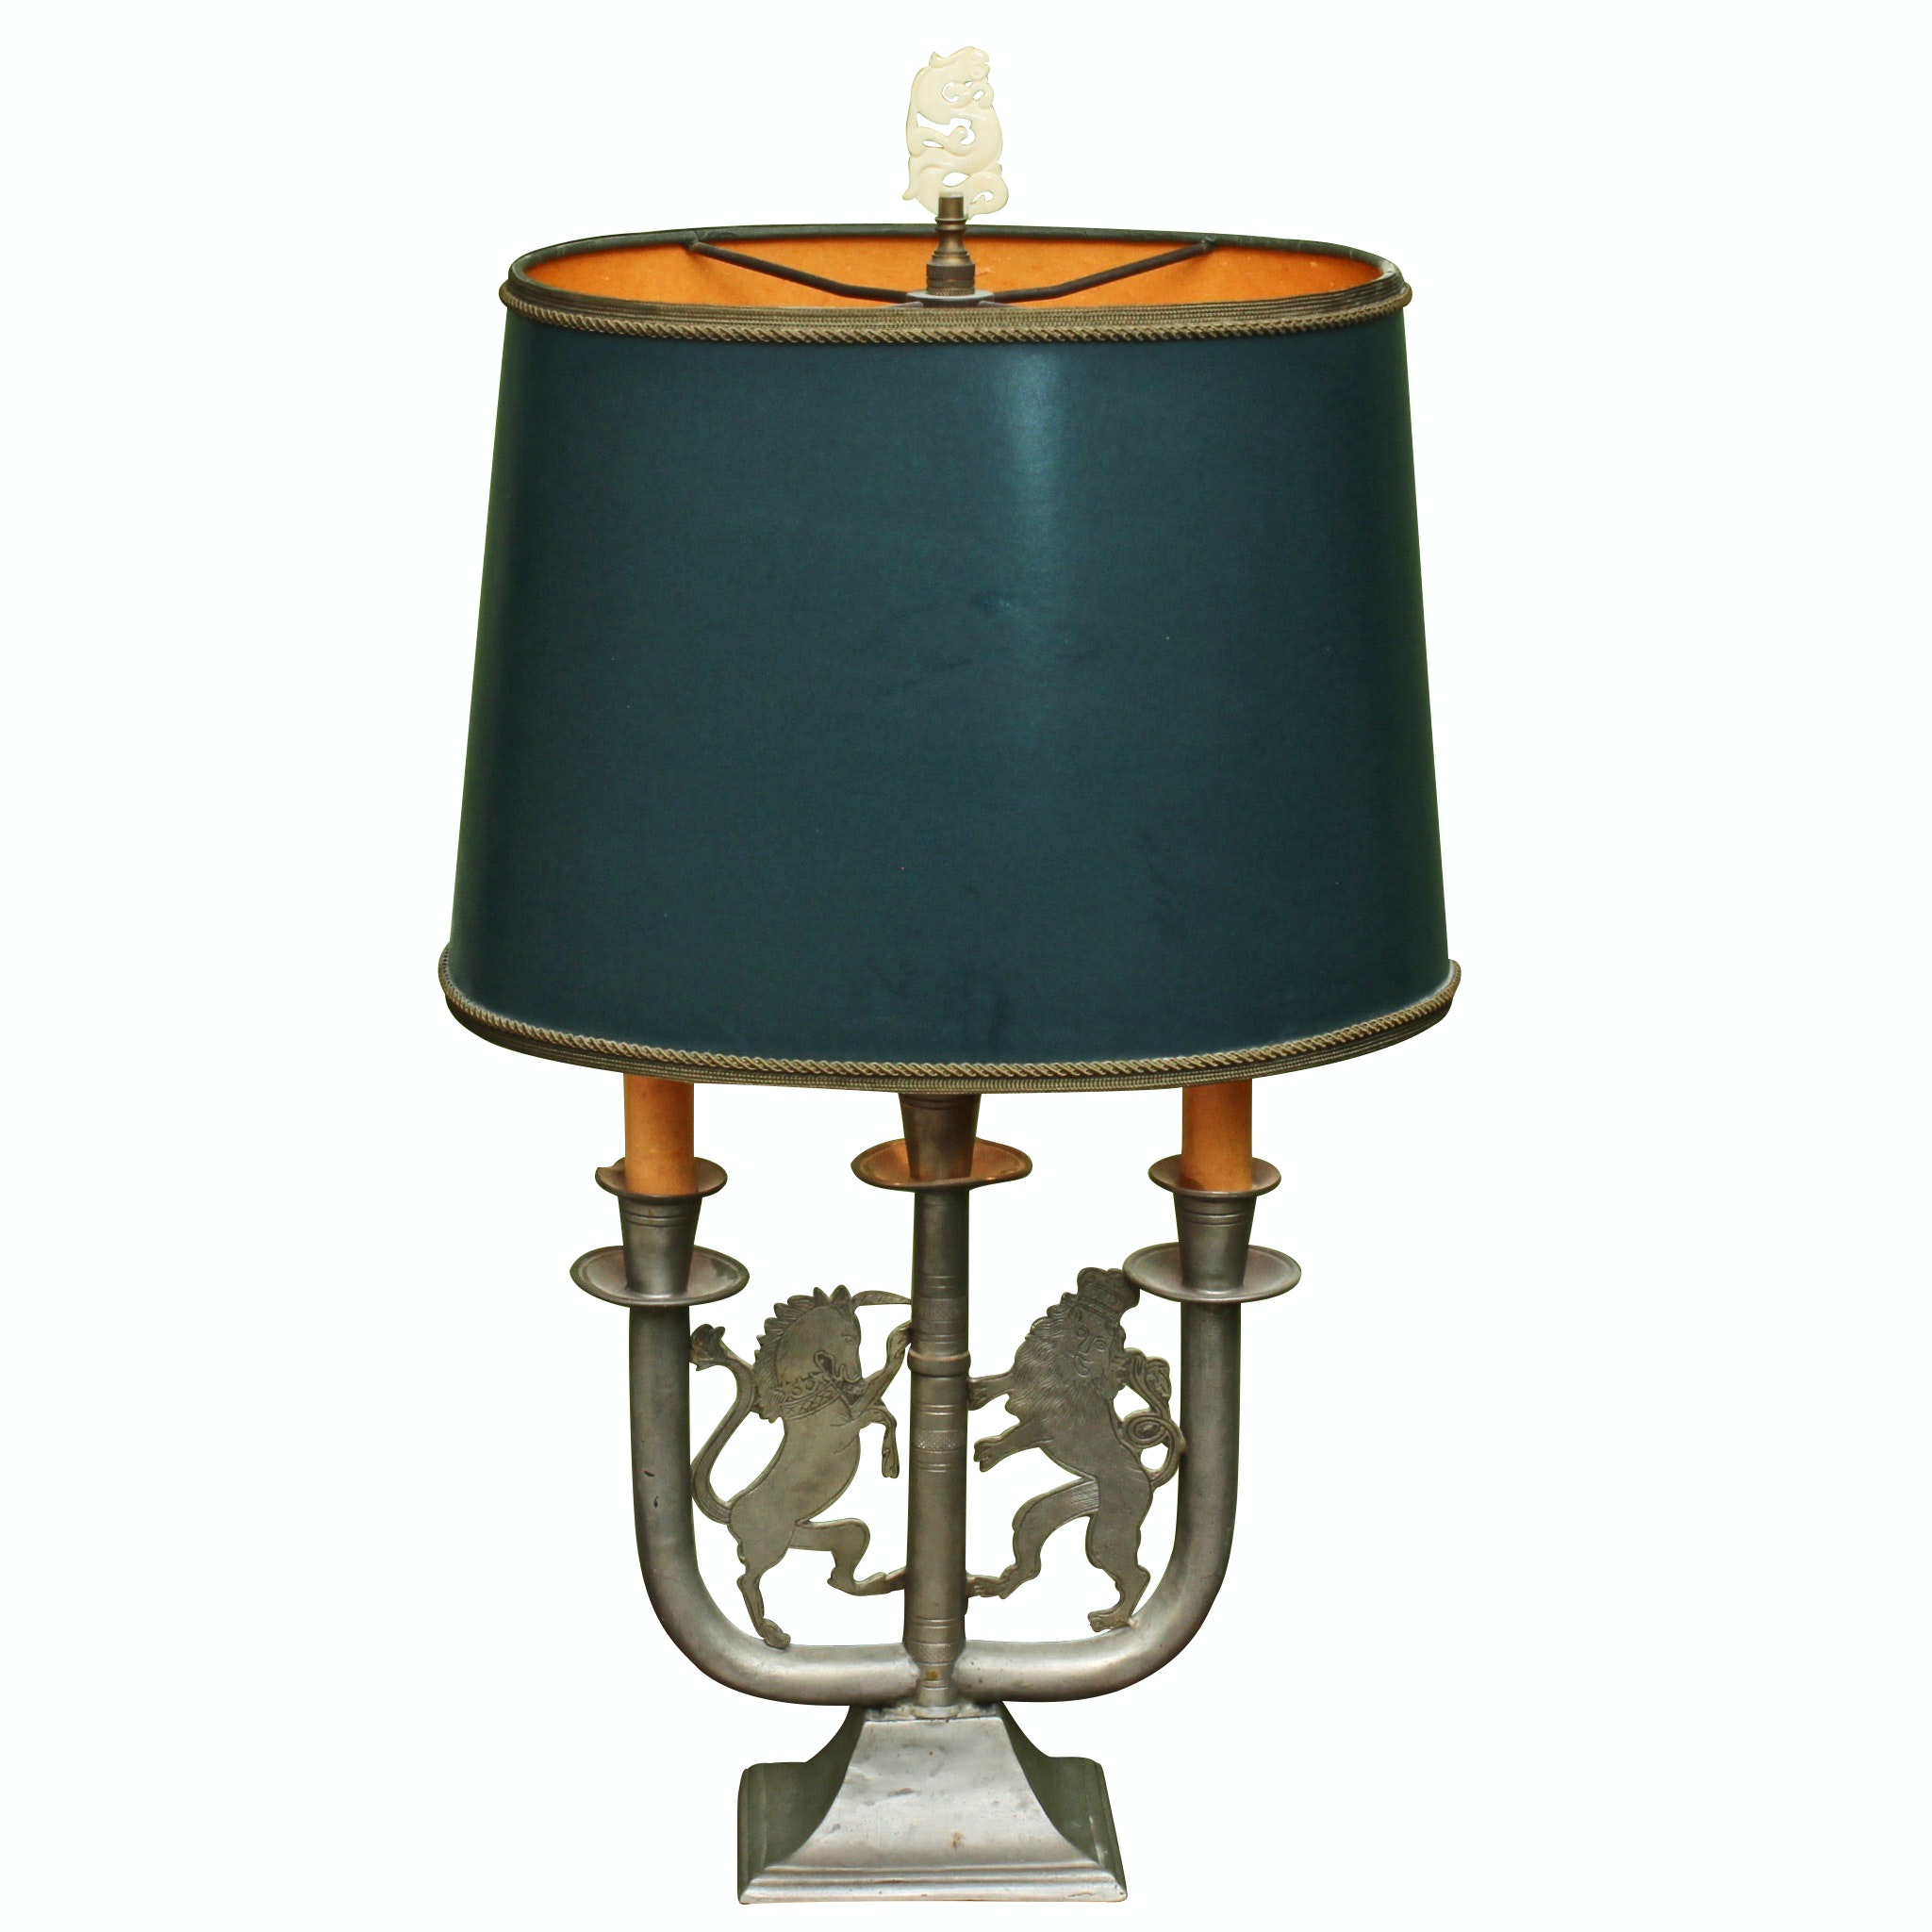 Converted Metal Candelabra Table Lamp with Armorial Figures, Mid-20th Century